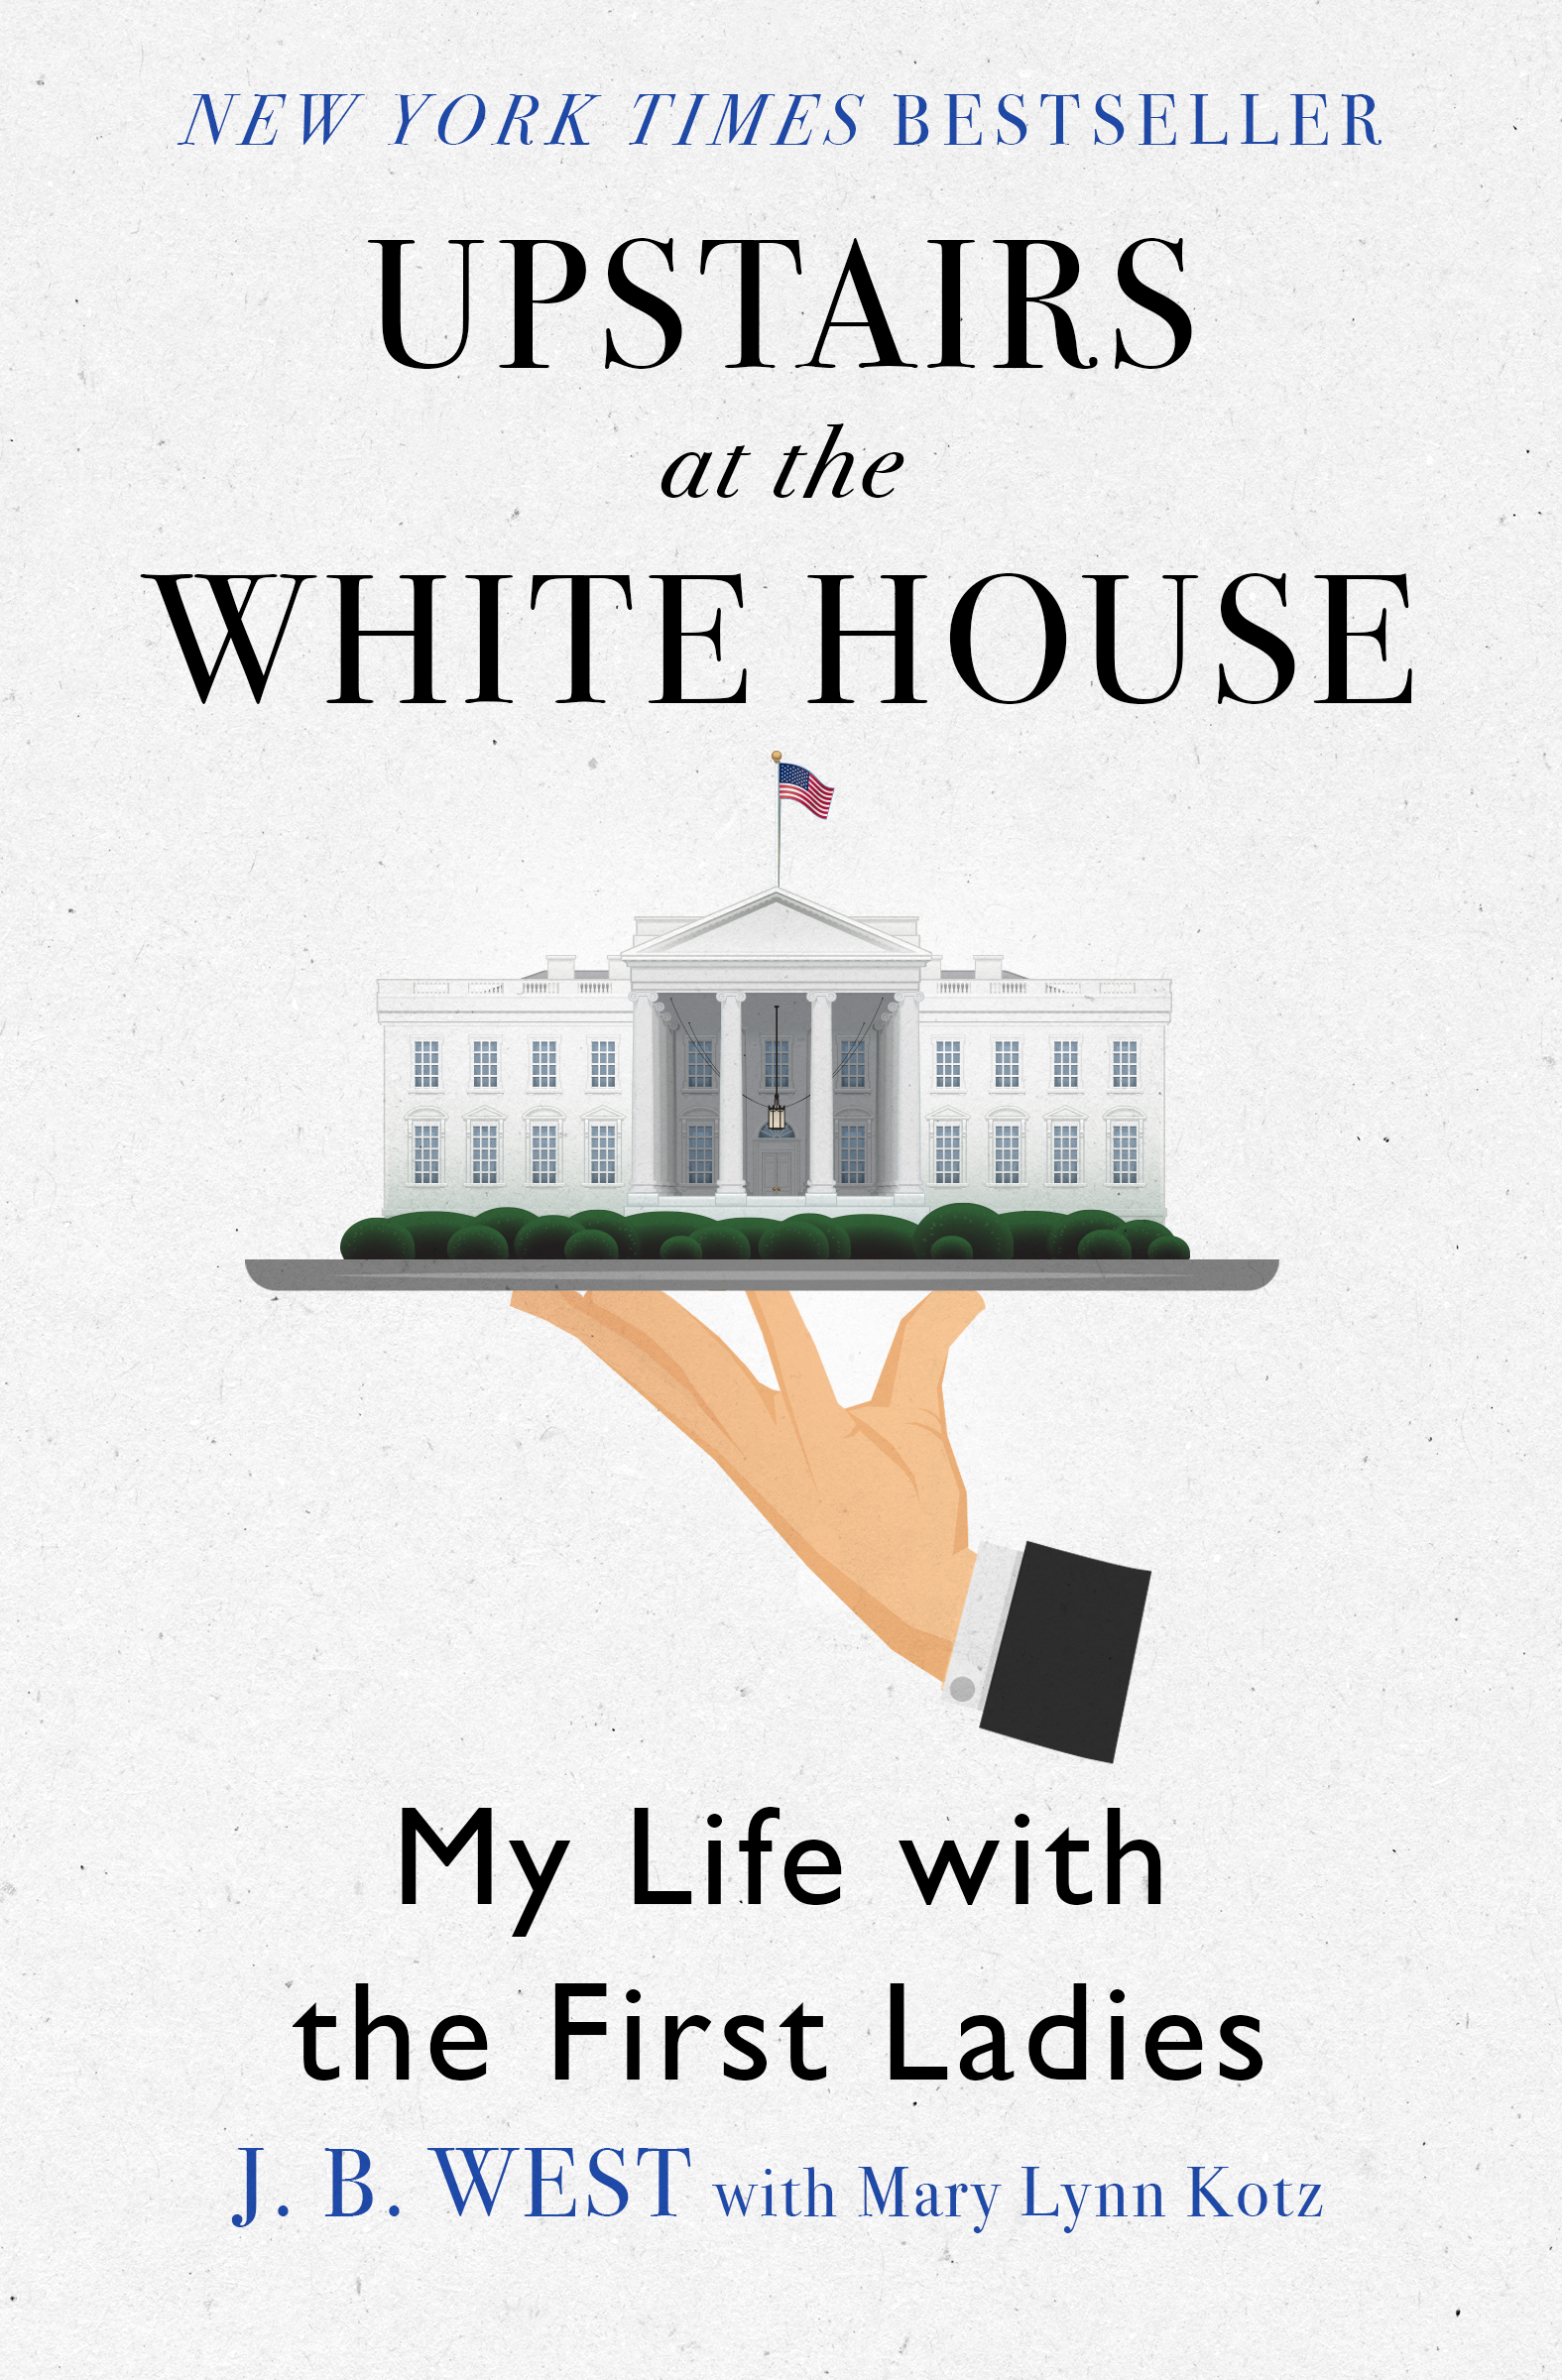 Upstairs at the White House My Life with the First Ladies